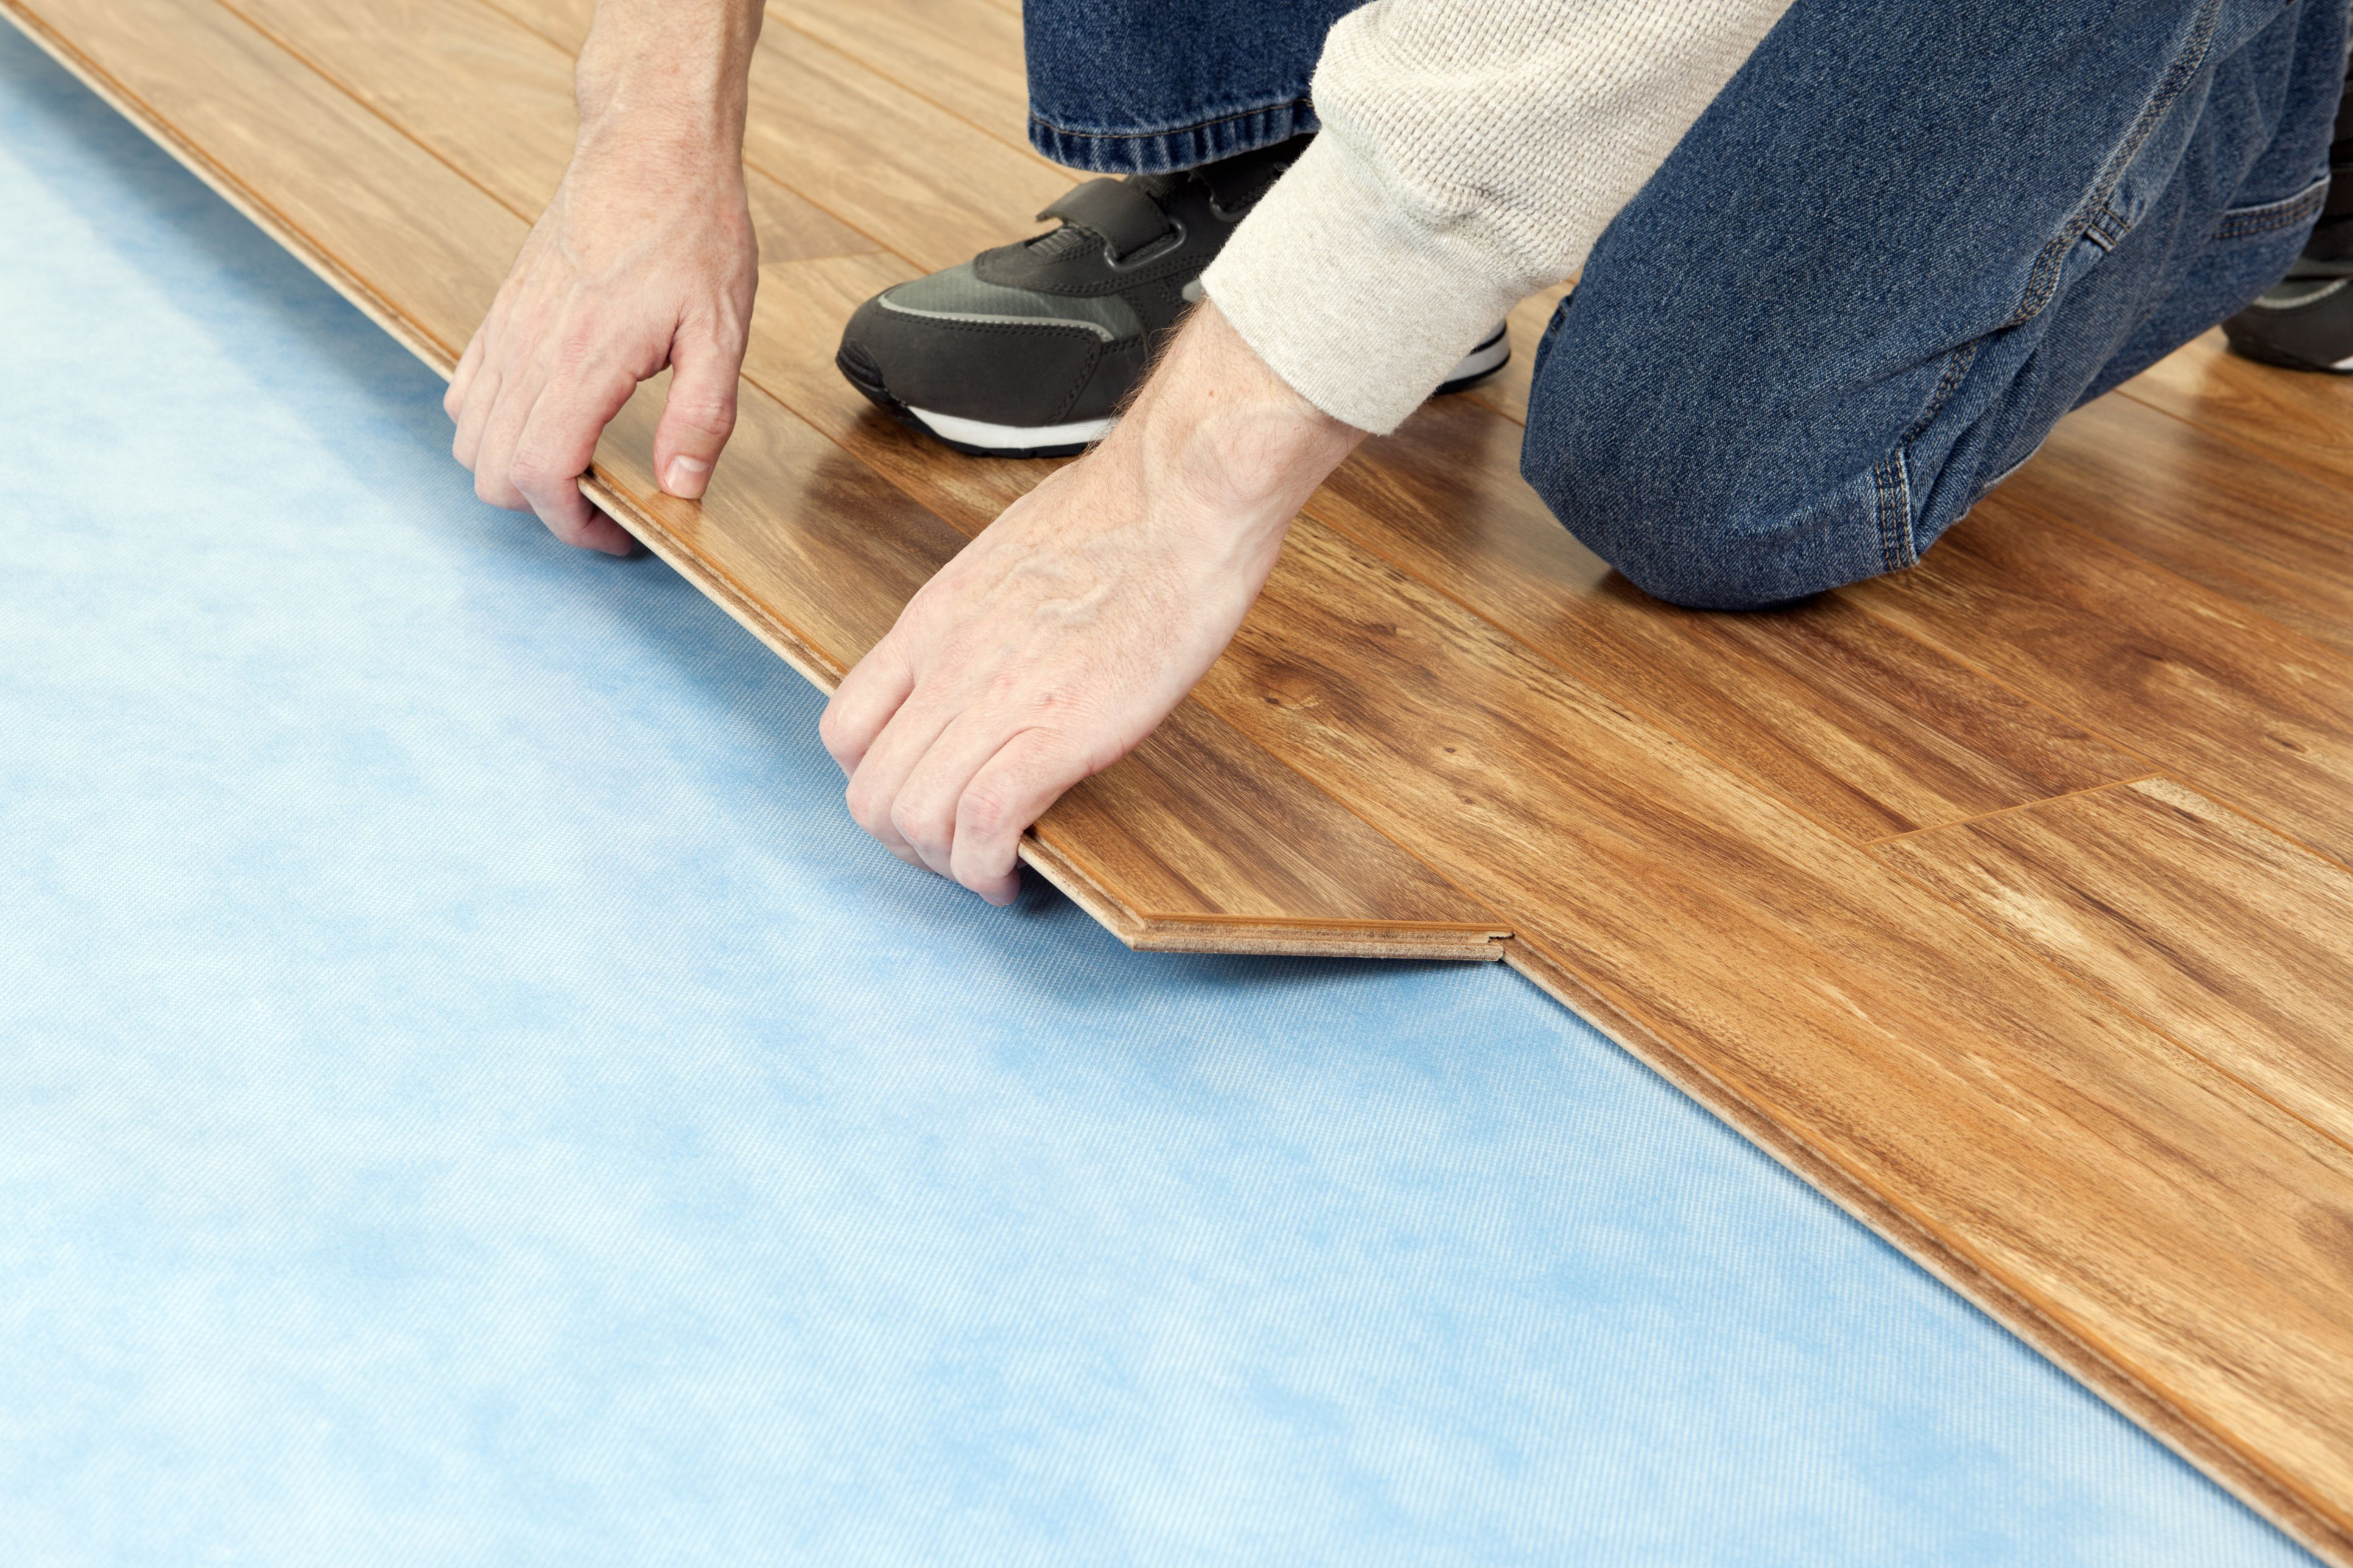 how to lay hardwood floor on stairs of flooring underlayment the basics throughout new floor installation 185270632 582b722c3df78c6f6af0a8ab